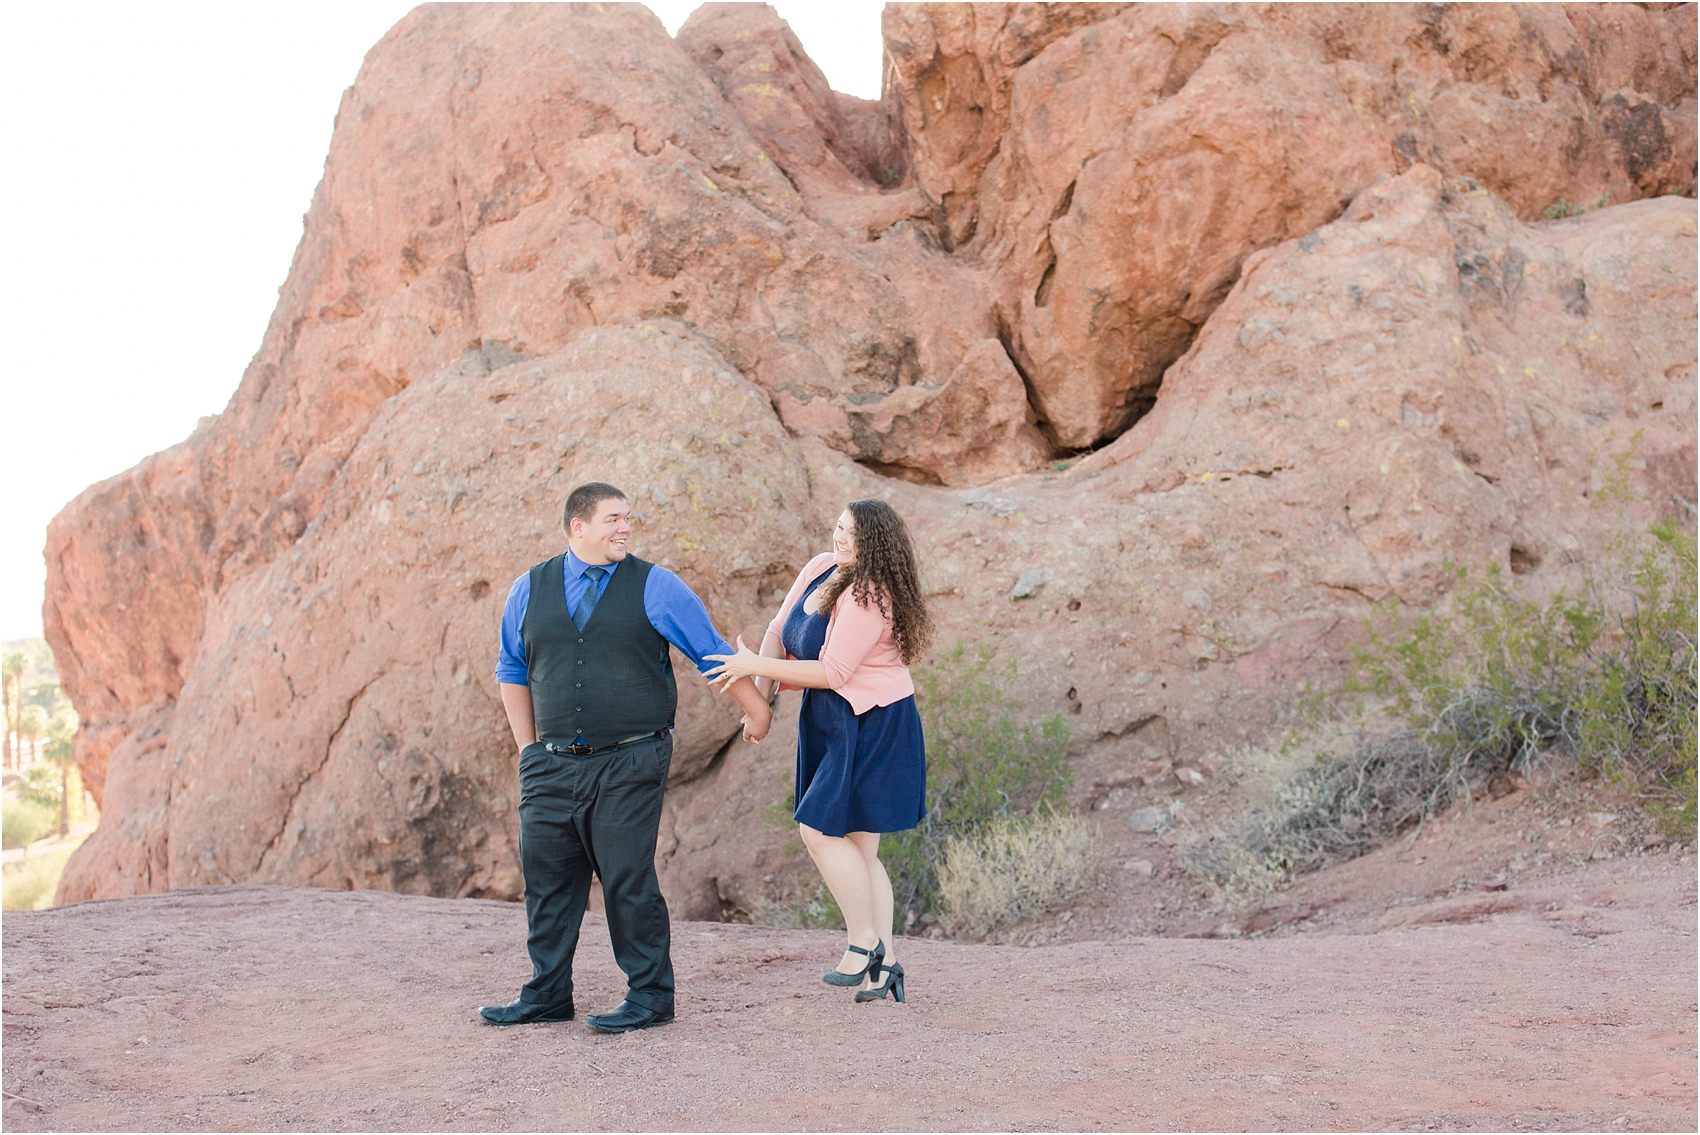 romantic-desert-engagement-photos-in-scottsdale-arizona-courtney-carolyn-photography-by-katelyn-james_0017.jpg